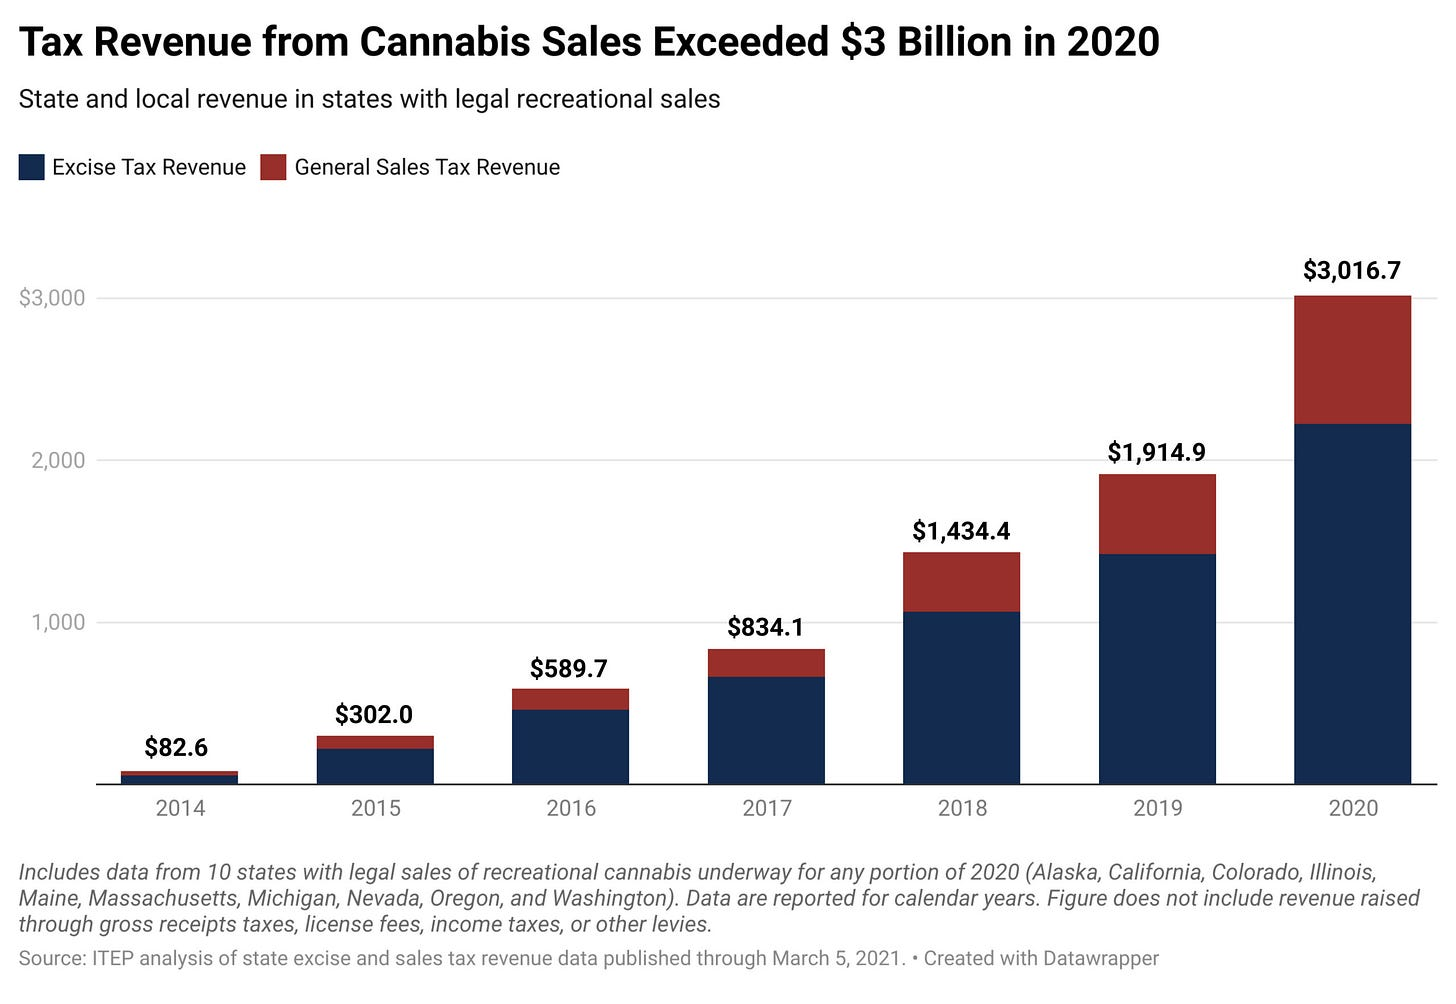 State and Local Cannabis Tax Revenue Jumps 58%, Surpassing $3 Billion in  2020 – ITEP